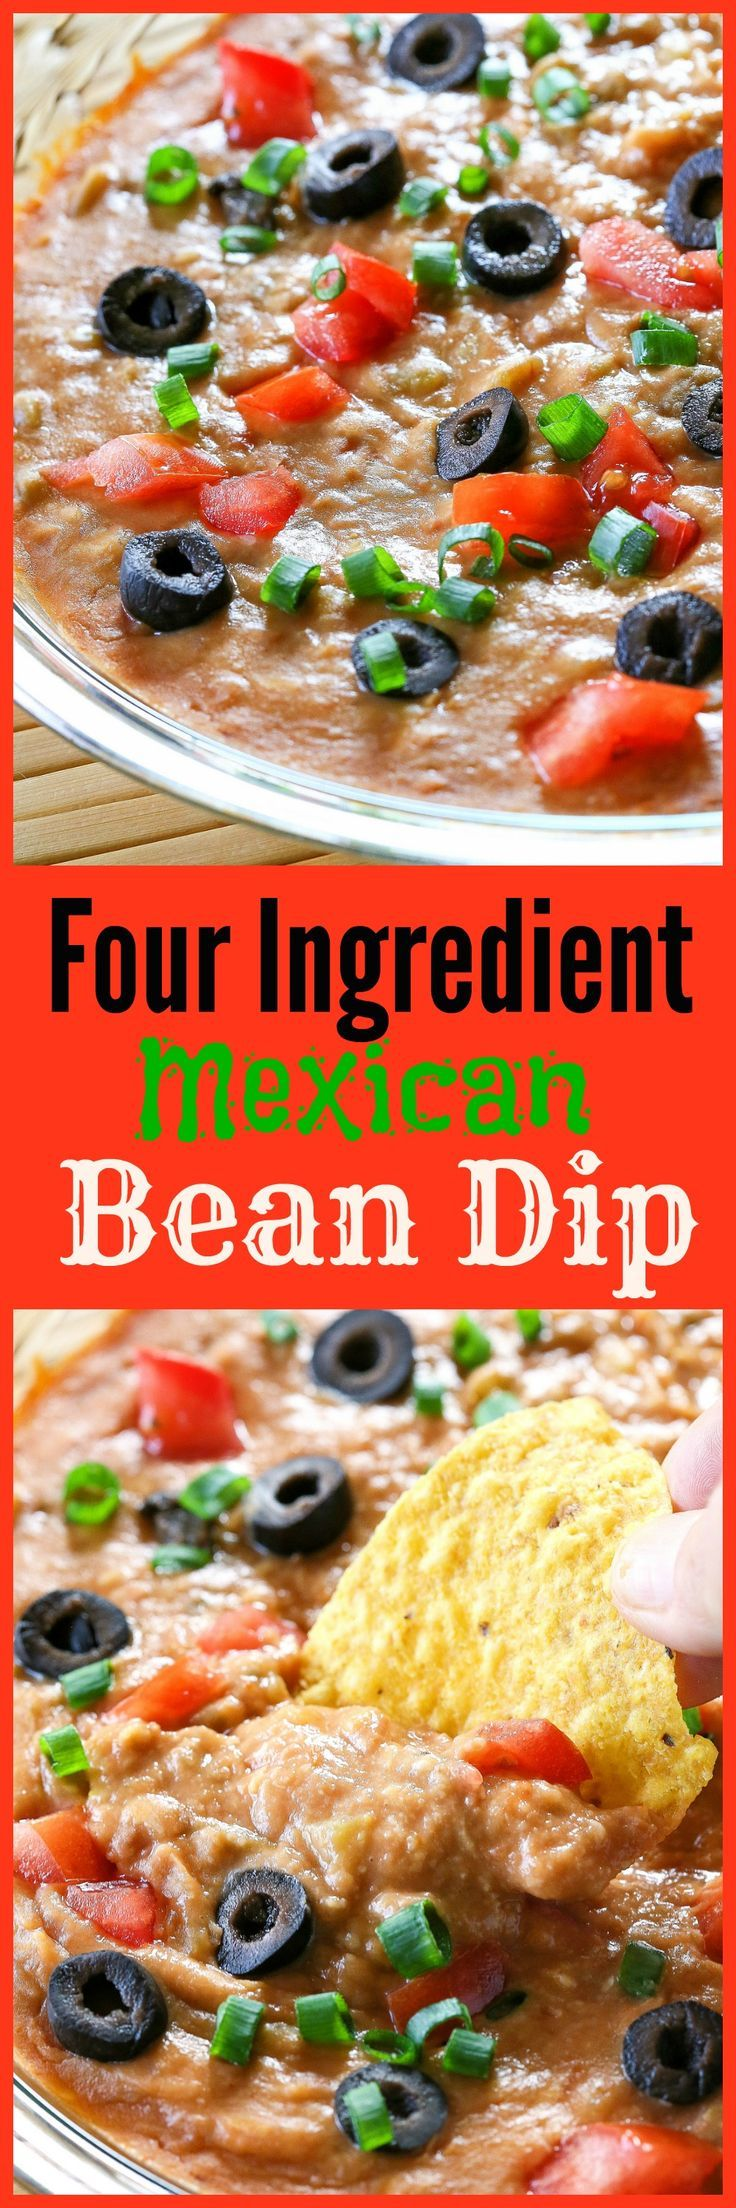 Four Ingredient Bean Dip - way too easy to make for how good it is.   The Girl Who Ate Everything